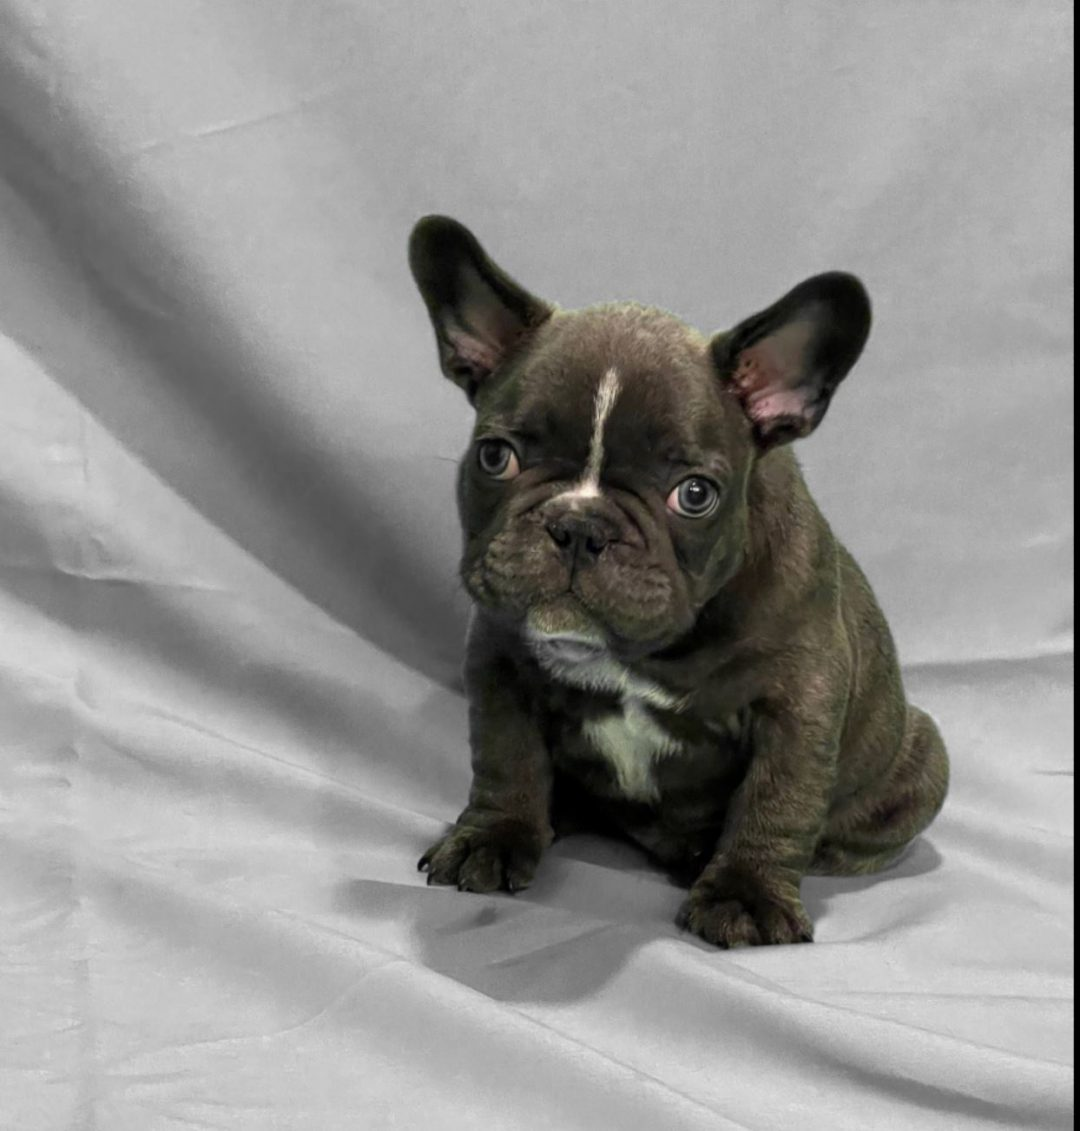 Baby Yoda Small Blue French Bulldog Puppy For Sale In The Tampa Florida Area Vip Puppies